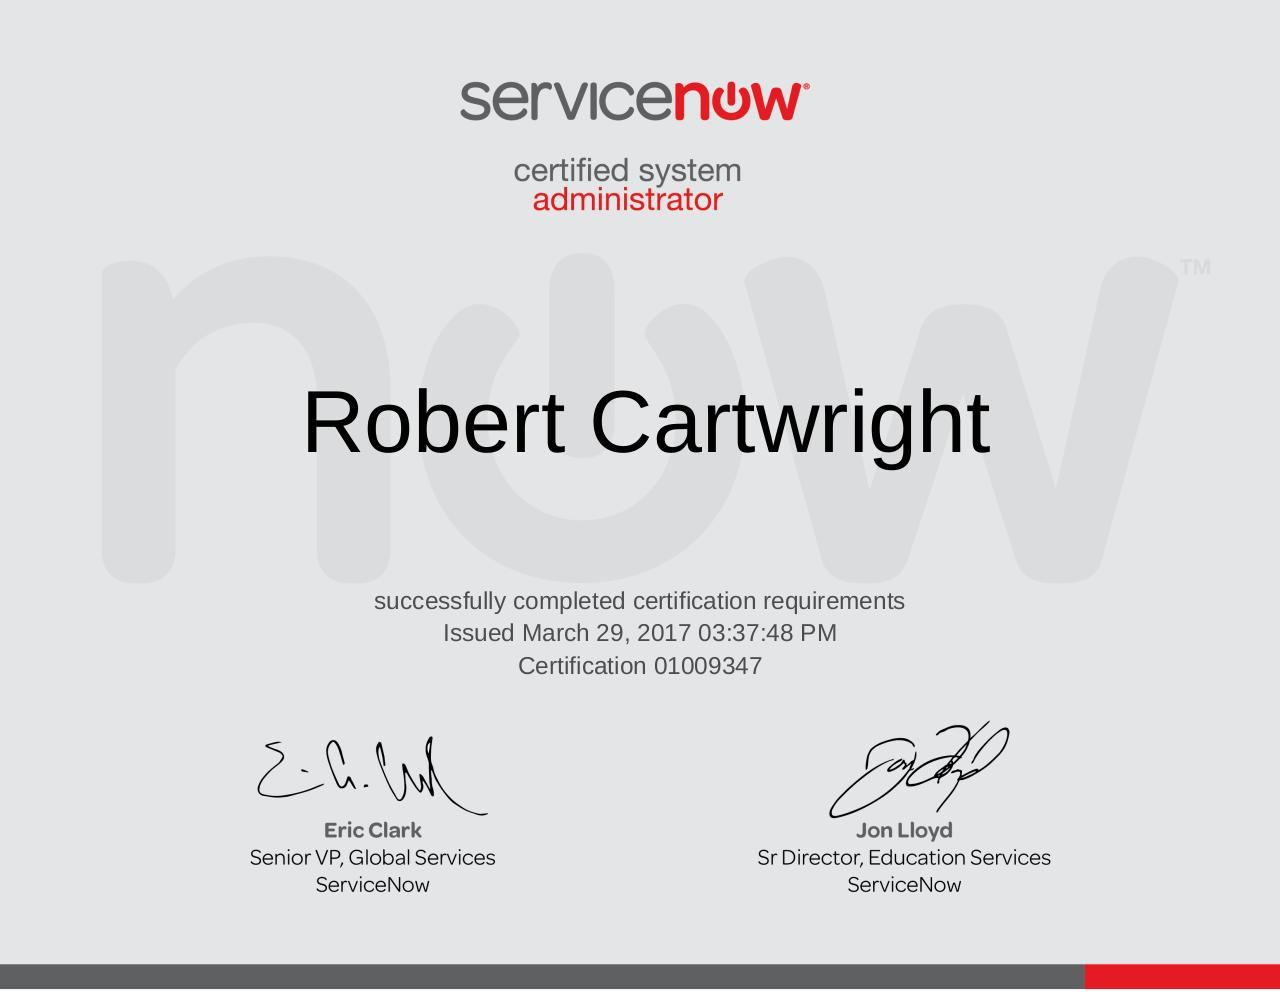 Servicenowcsa pdf pdf archive report spam or adult content 1betcityfo Gallery